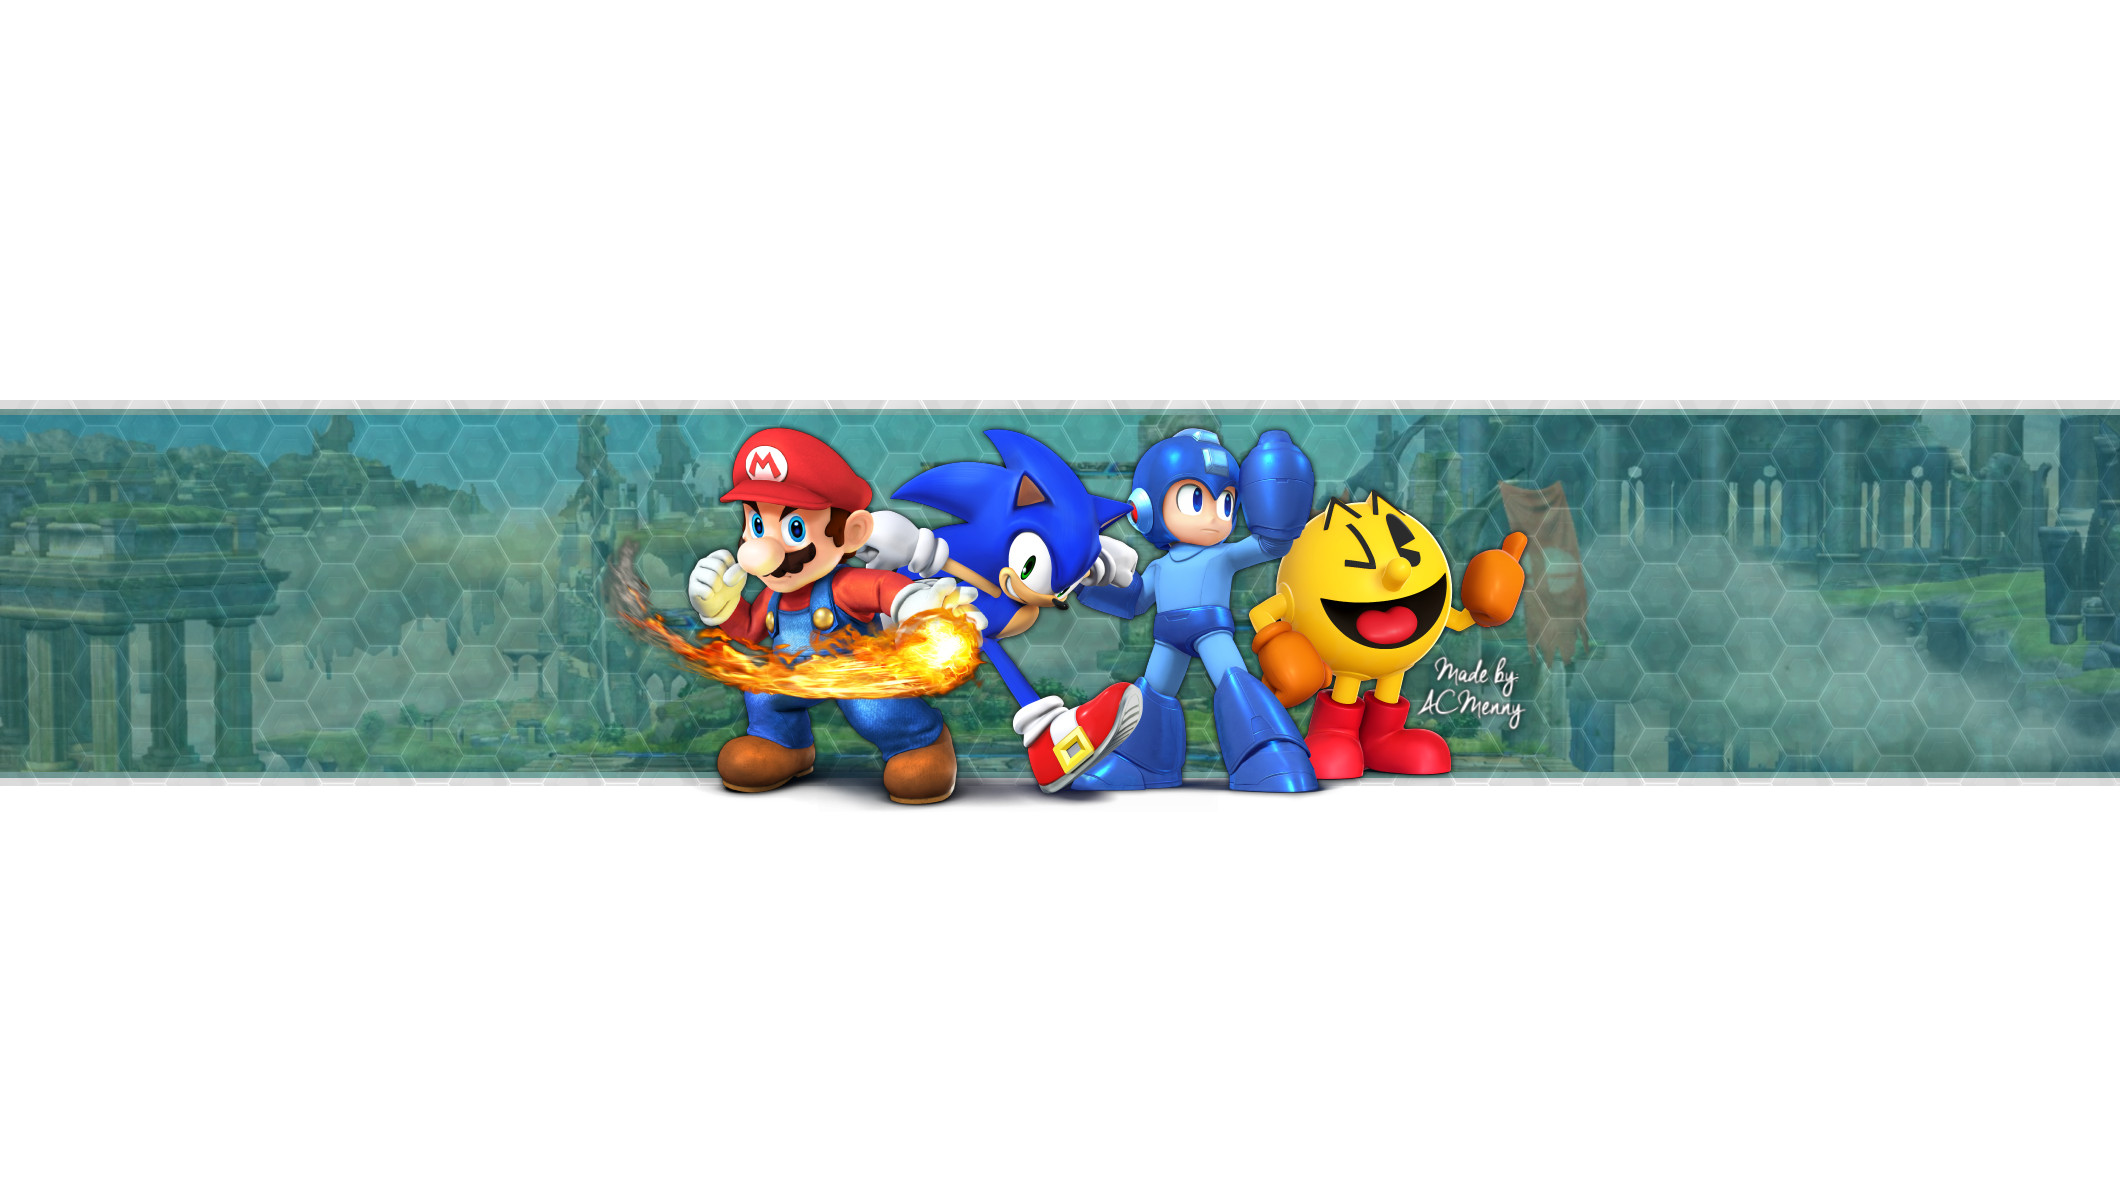 Mario Youtube Banner Free Super Smash Bros Wii U 3ds Banner by Acmenny